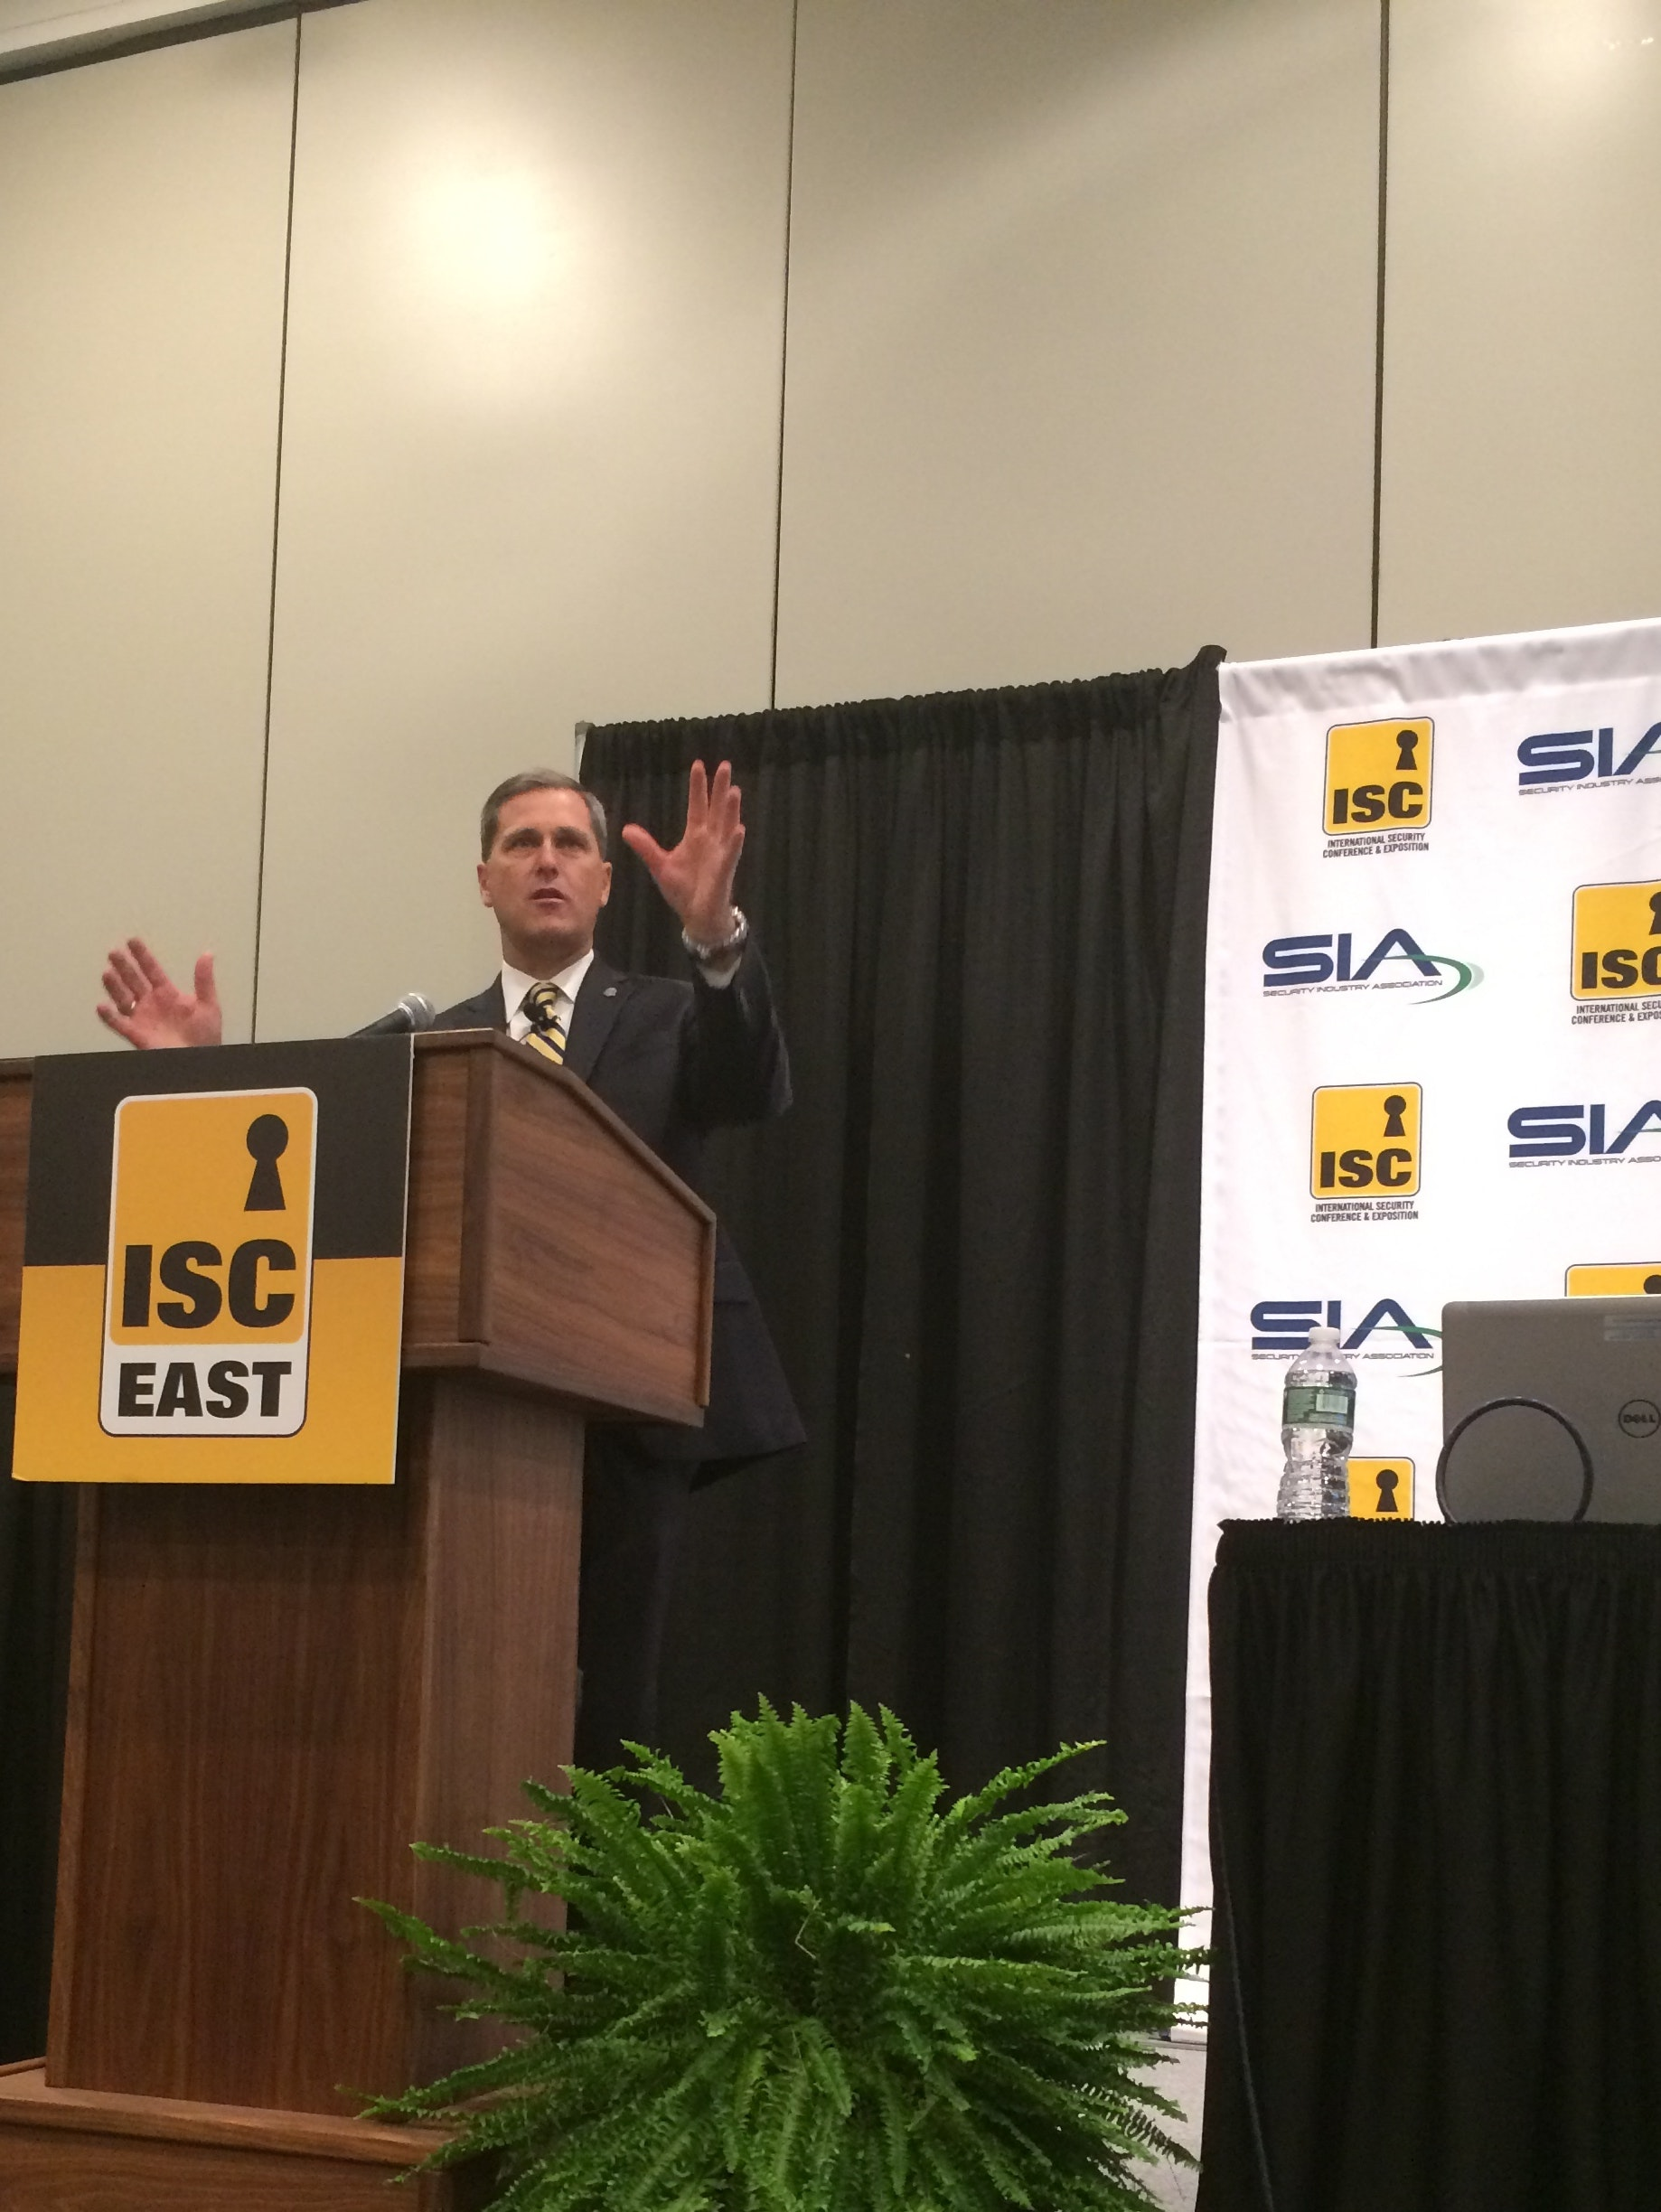 Philip Celestini, section chief at FBI's Cyber Division, addresses a gathering at ISC East